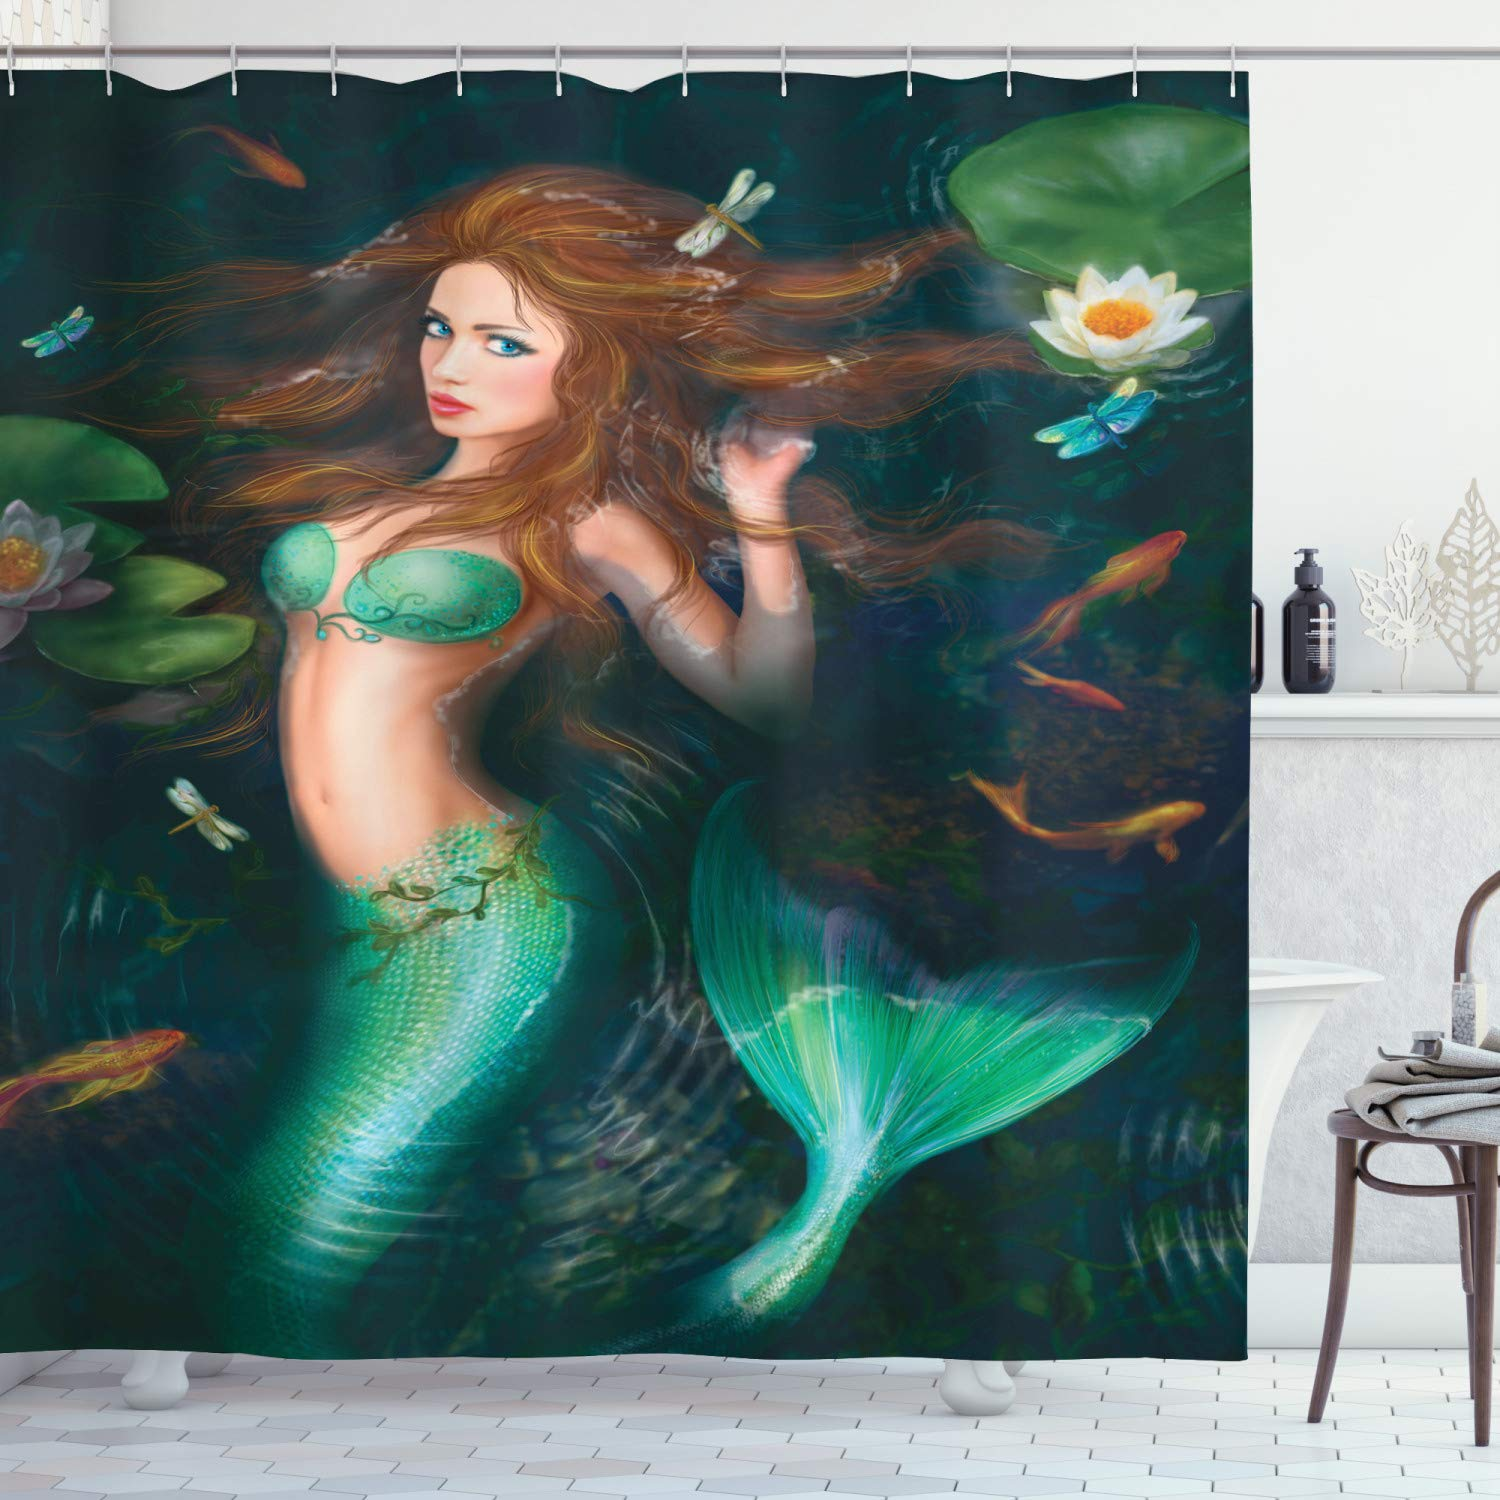 """Ambesonne Underwater Shower Curtain, Fantasy Mermaid in Lake with Lilies Blossom Plants Leaves, Cloth Fabric Bathroom Decor Set with Hooks, 75"""" Long, Green Aqua"""